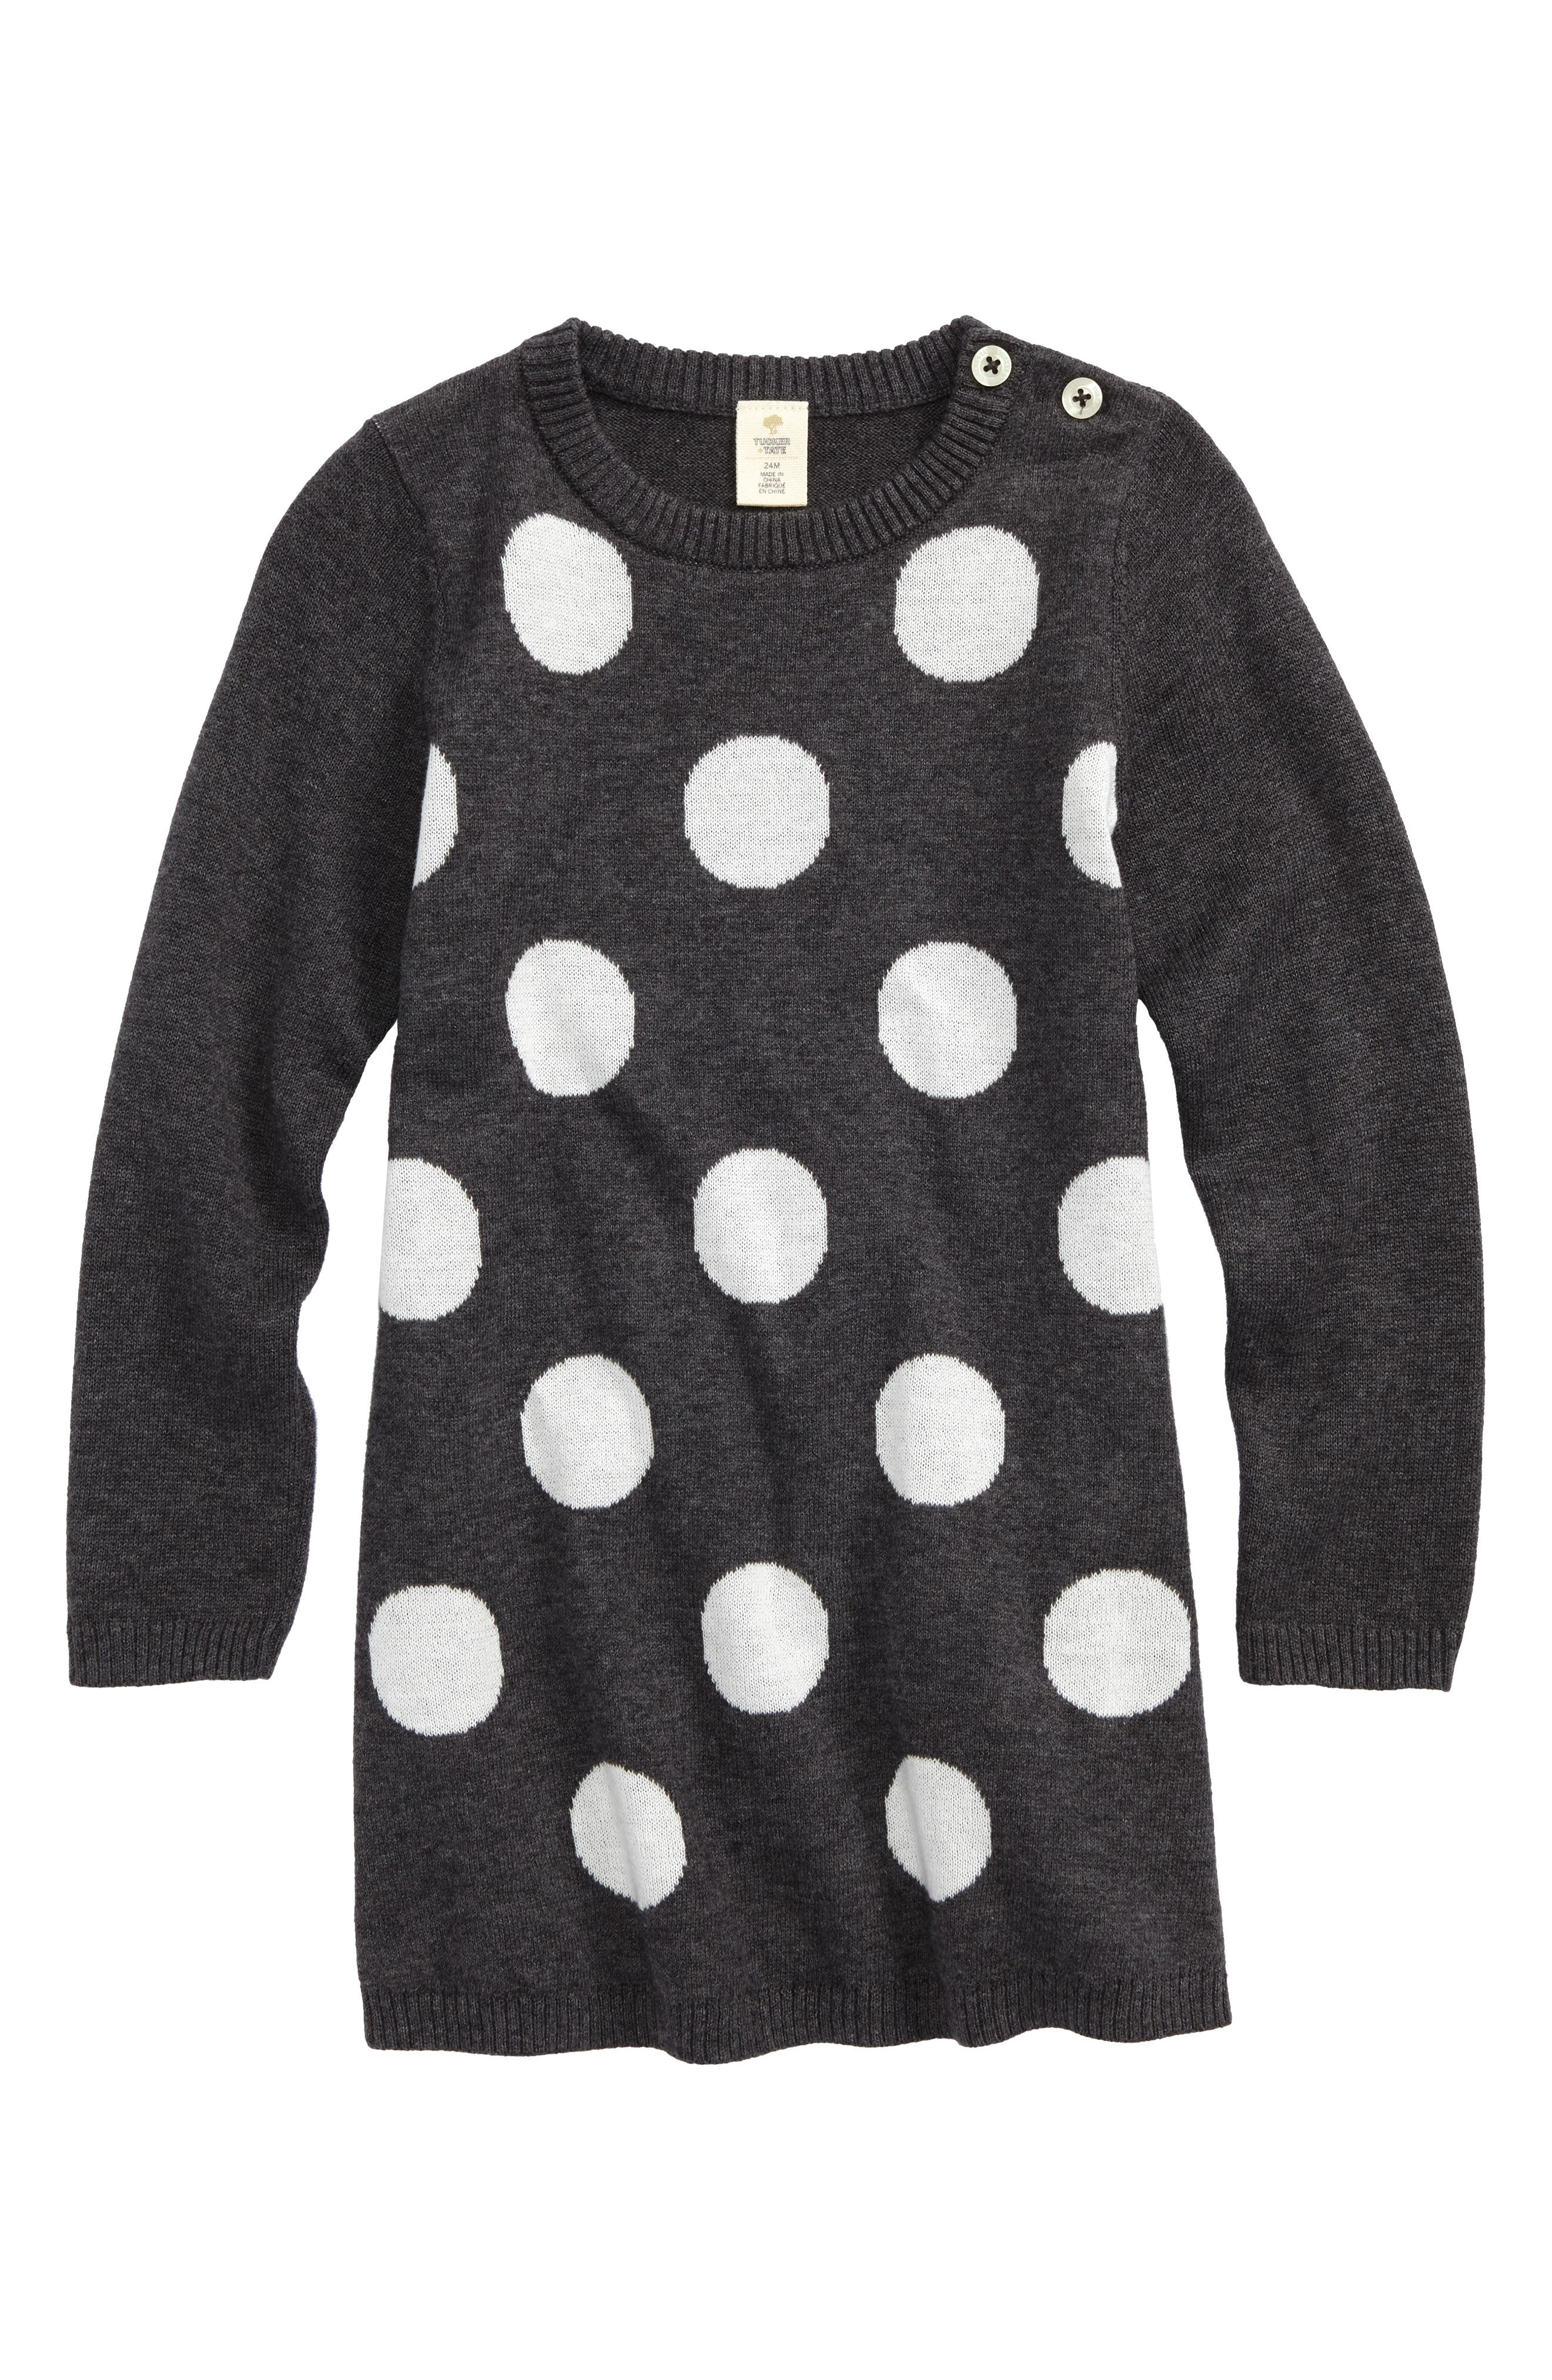 Polka Dot Sweater Dress,                         Main,                         color, Grey Charcoal Heather Dot